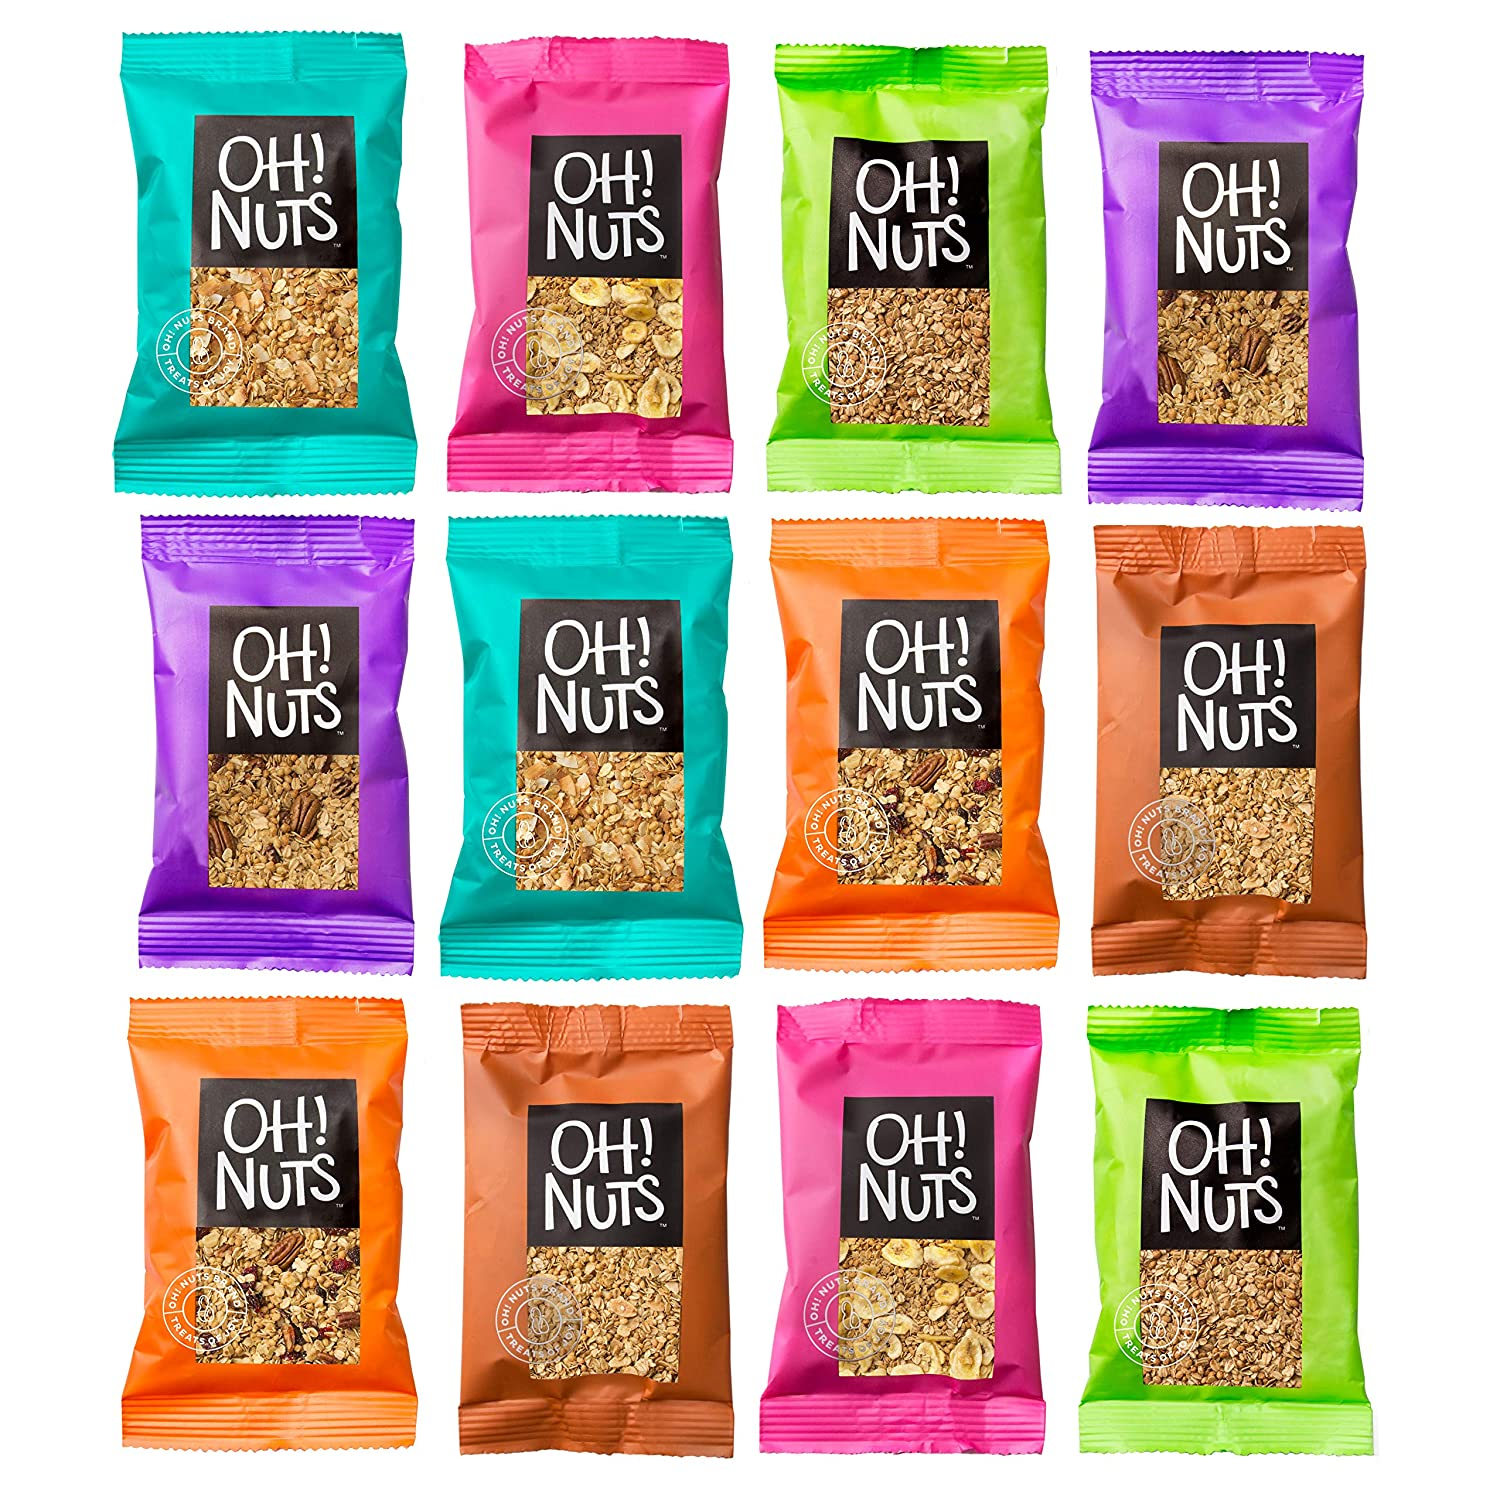 Oh! Nuts Granola Single Serve Packs   Healthy Gourmet Set w/ 12 Assorted Serving Size Bags of Toasted Oats, Nuts & Dried Fruit   Perfect High Protein Pantry Snacks for Cold Cereal, Yogurt & More